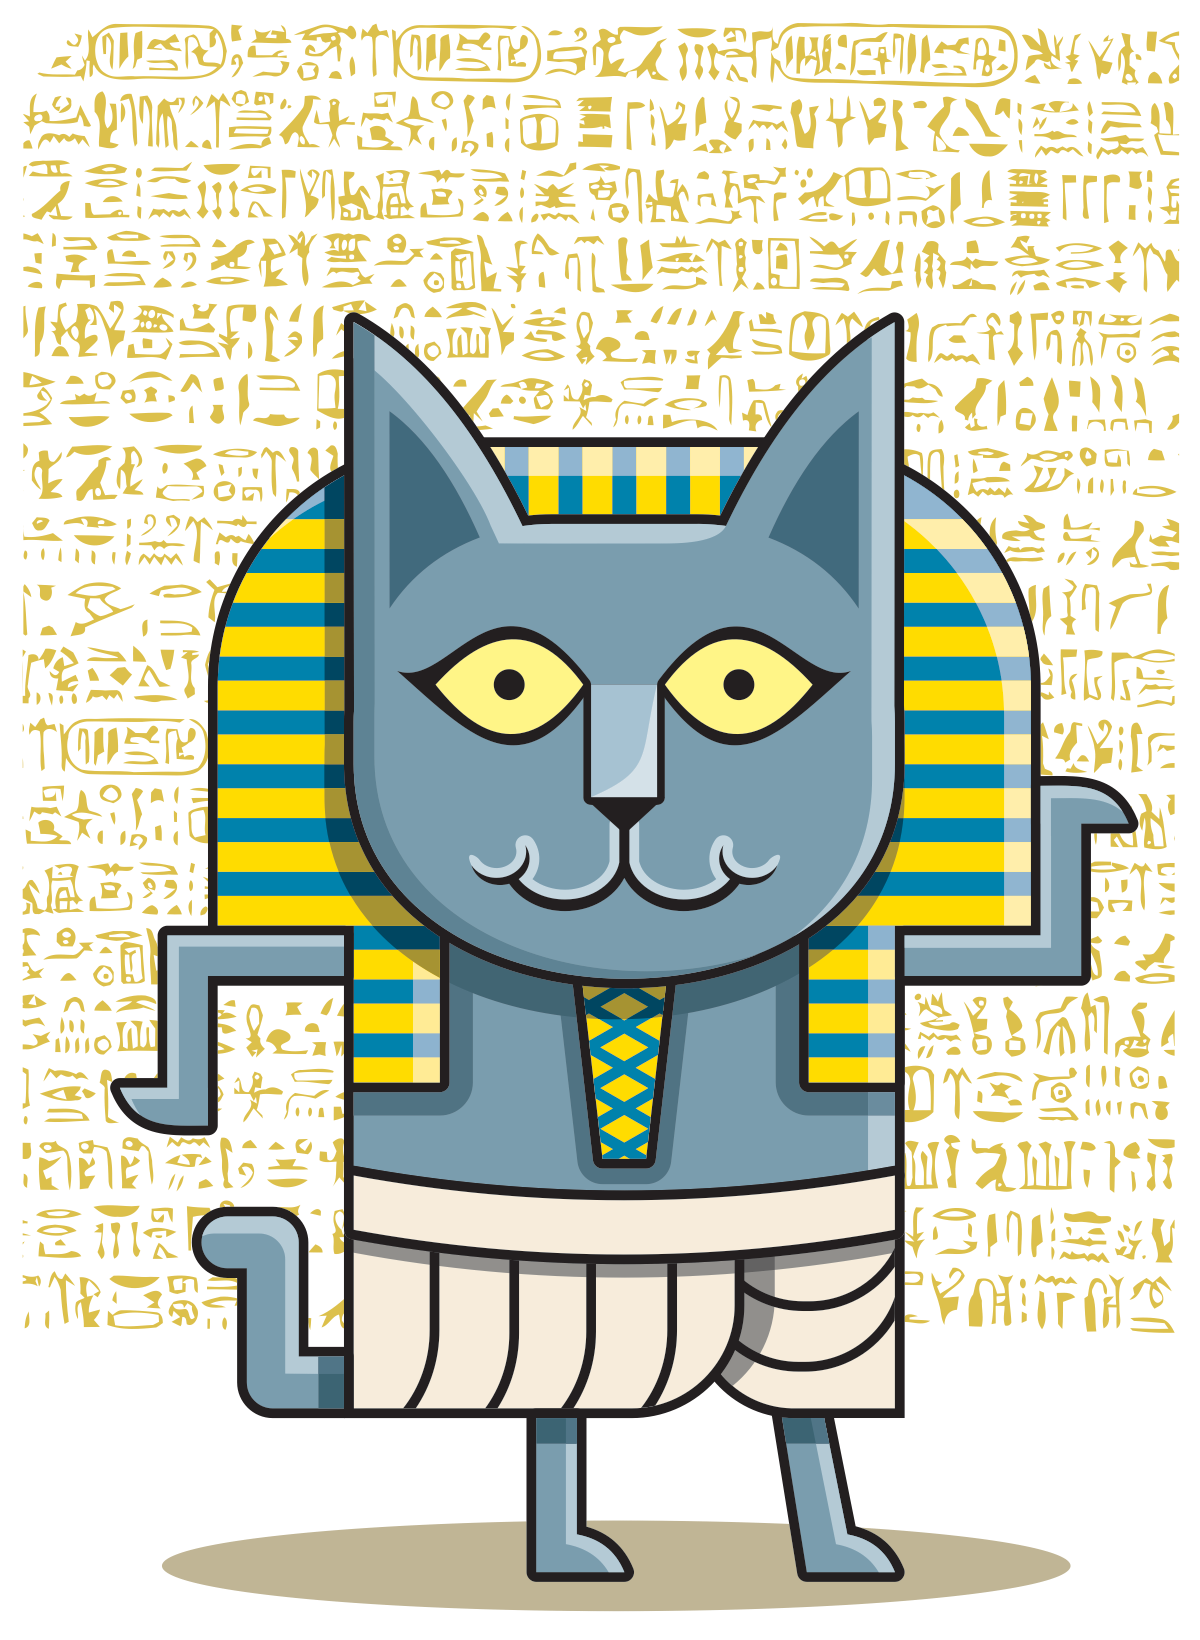 Pharaoh cat merch design